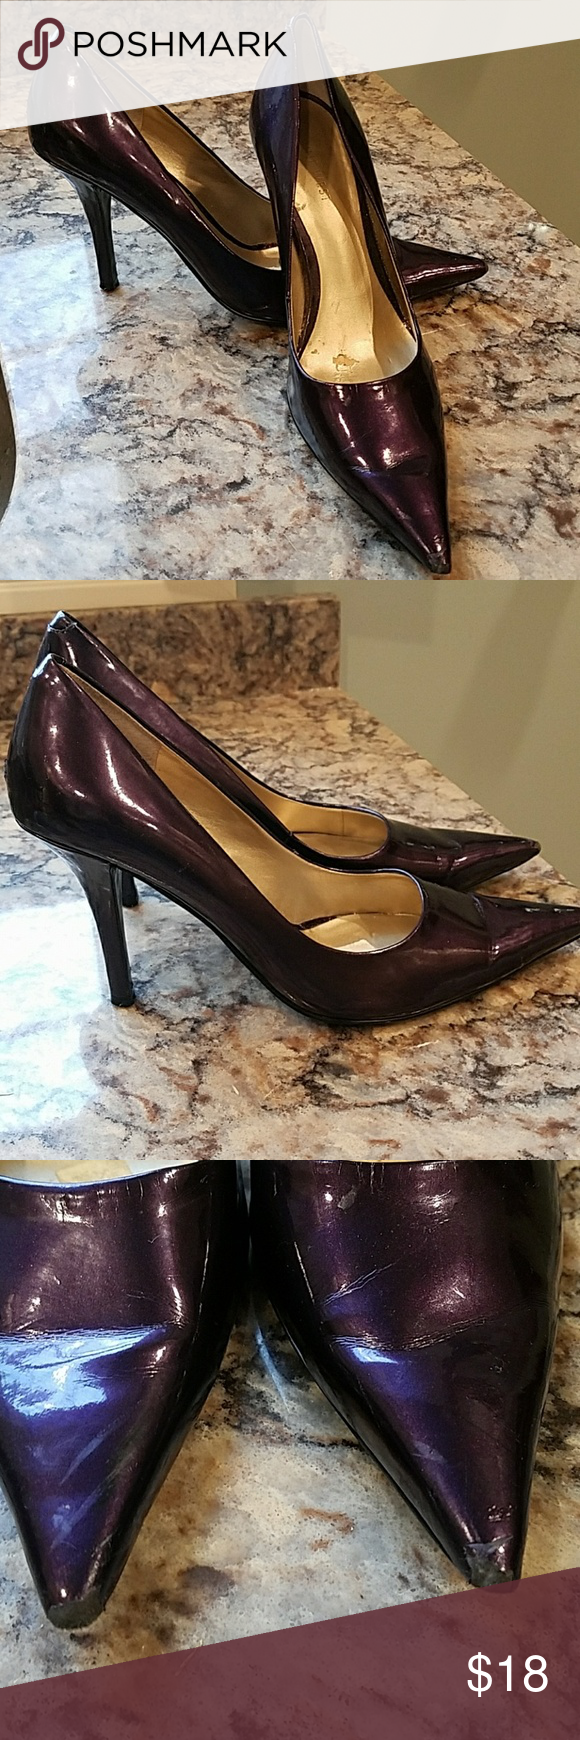 """Nine West Heels This is a pr of beautiful purple heels.  This is a 3"""" heel and in gently worn condition...see pics above. Nine West Shoes Heels"""